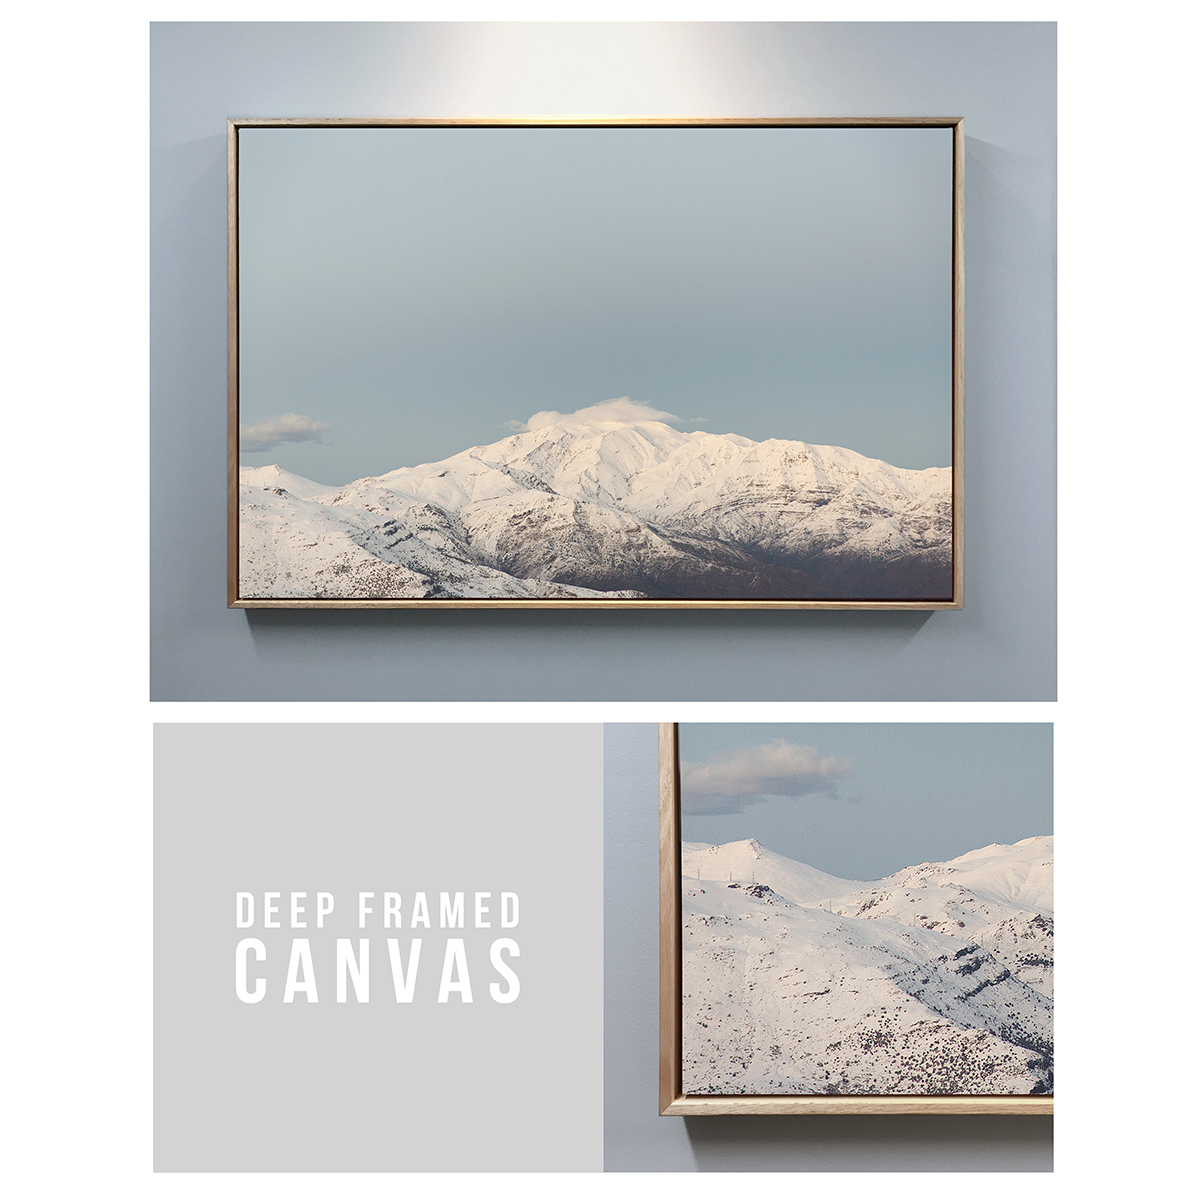 Buy Online - Deep Framed Canvas Prints from Prism Imaging Melbourne